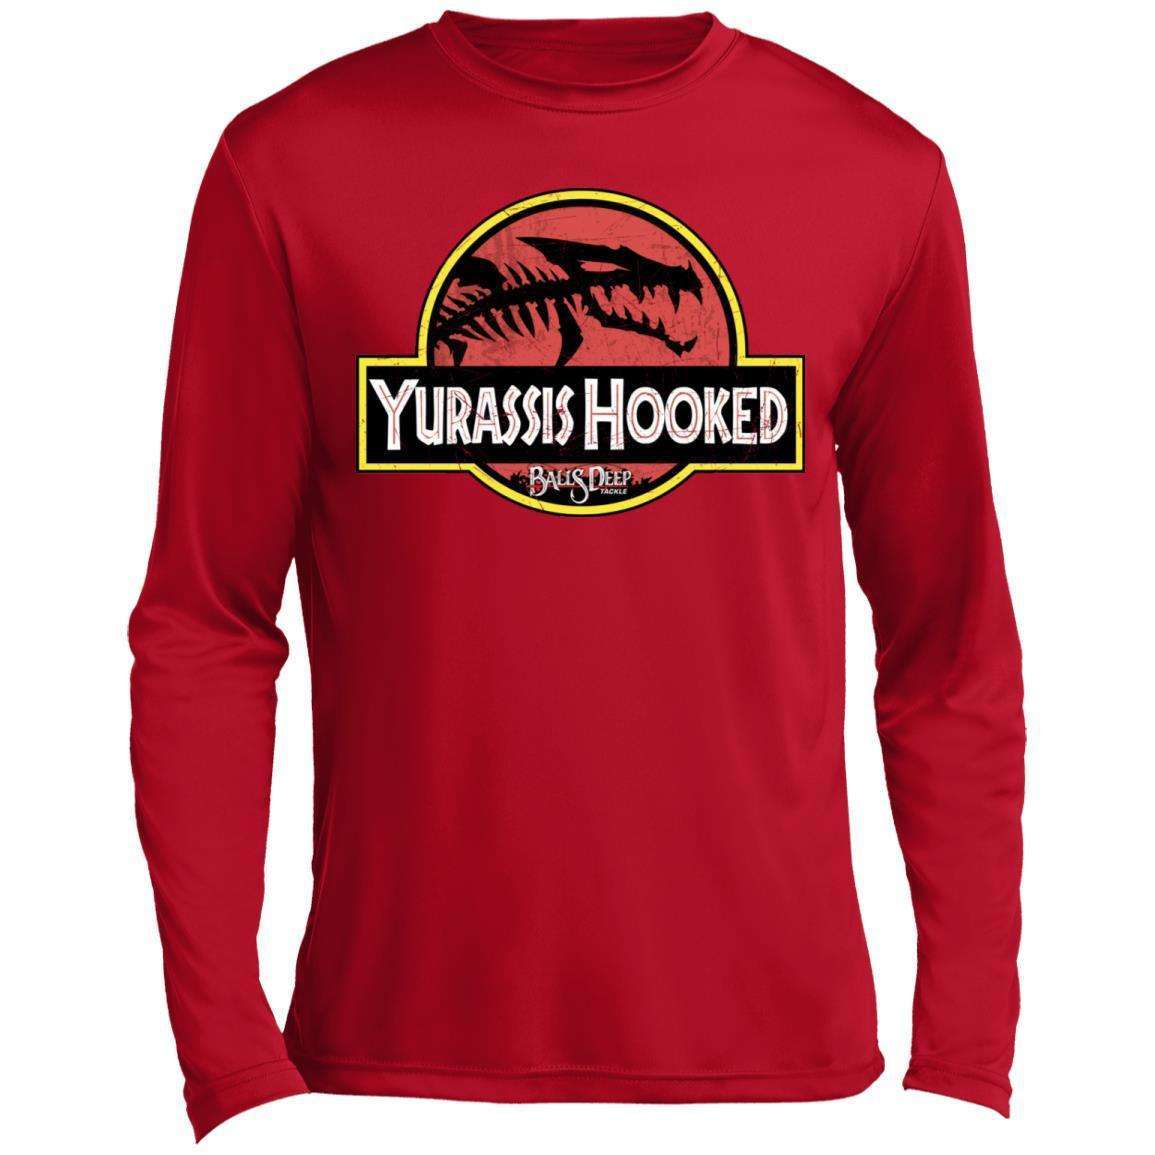 Yurassis Hooked Performance Long Sleeve